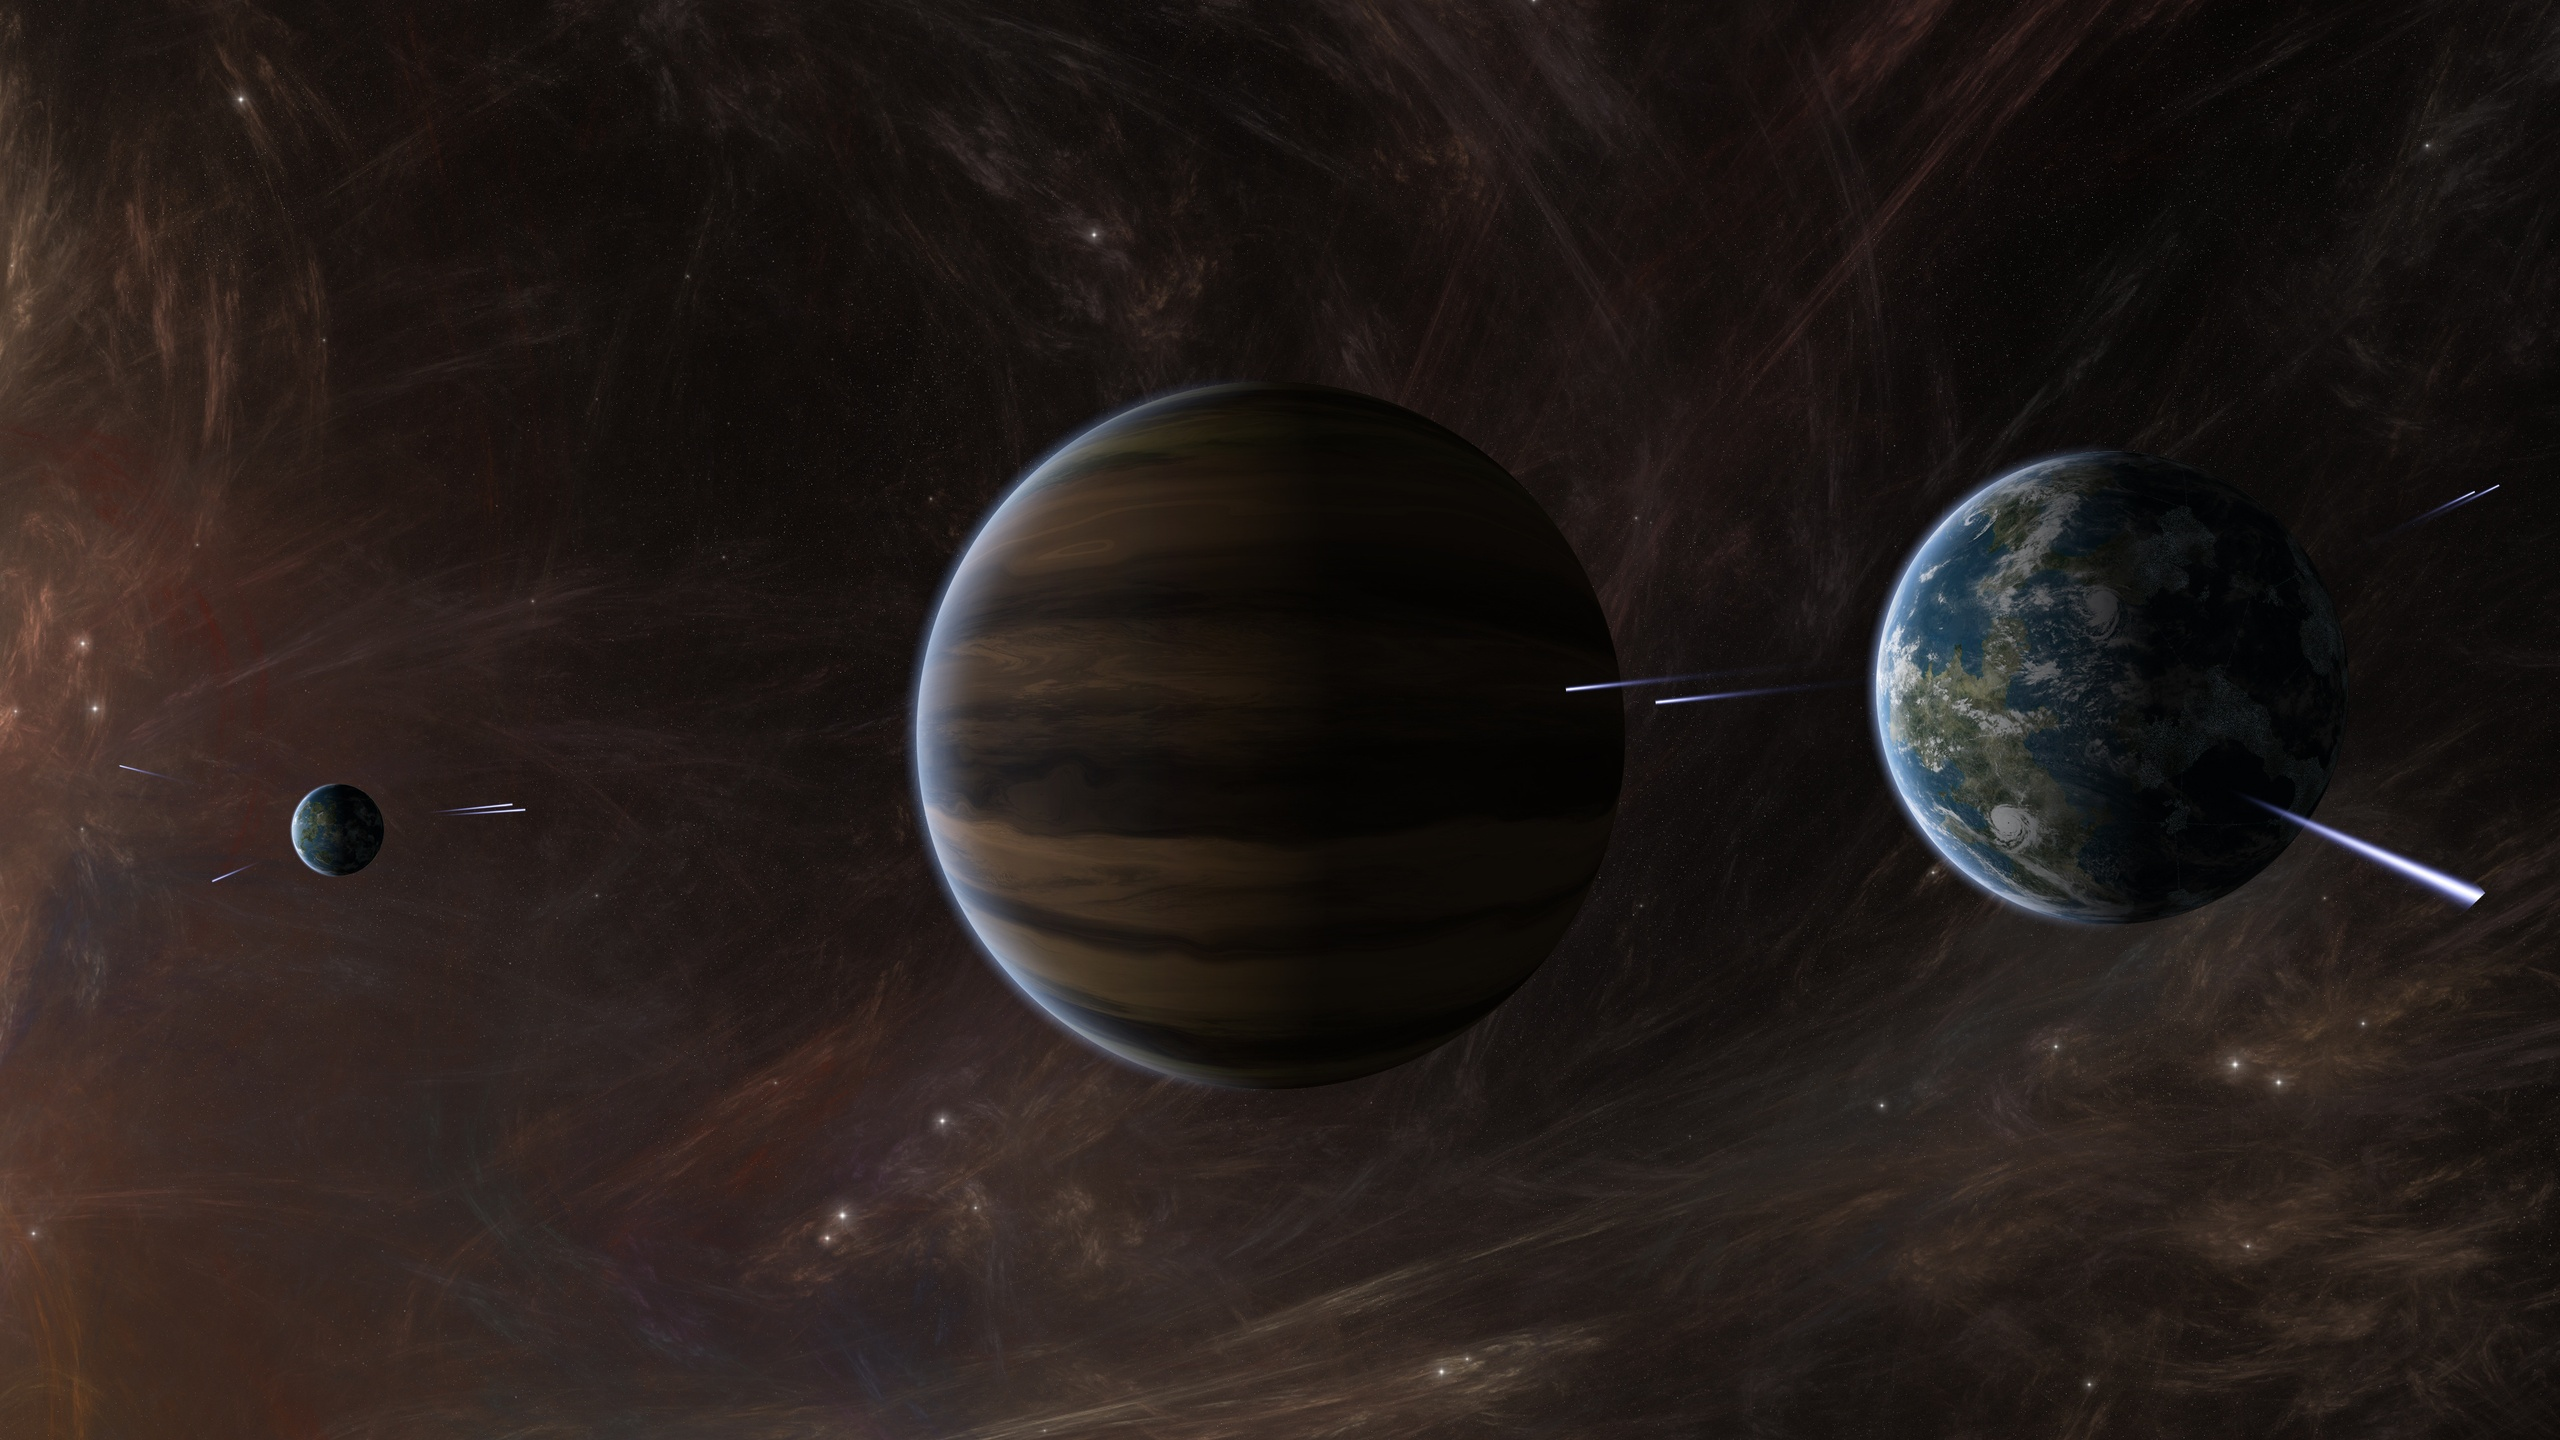 Space planets activity wallpapers 2560x1440 901170 - Space 2560 x 1440 ...